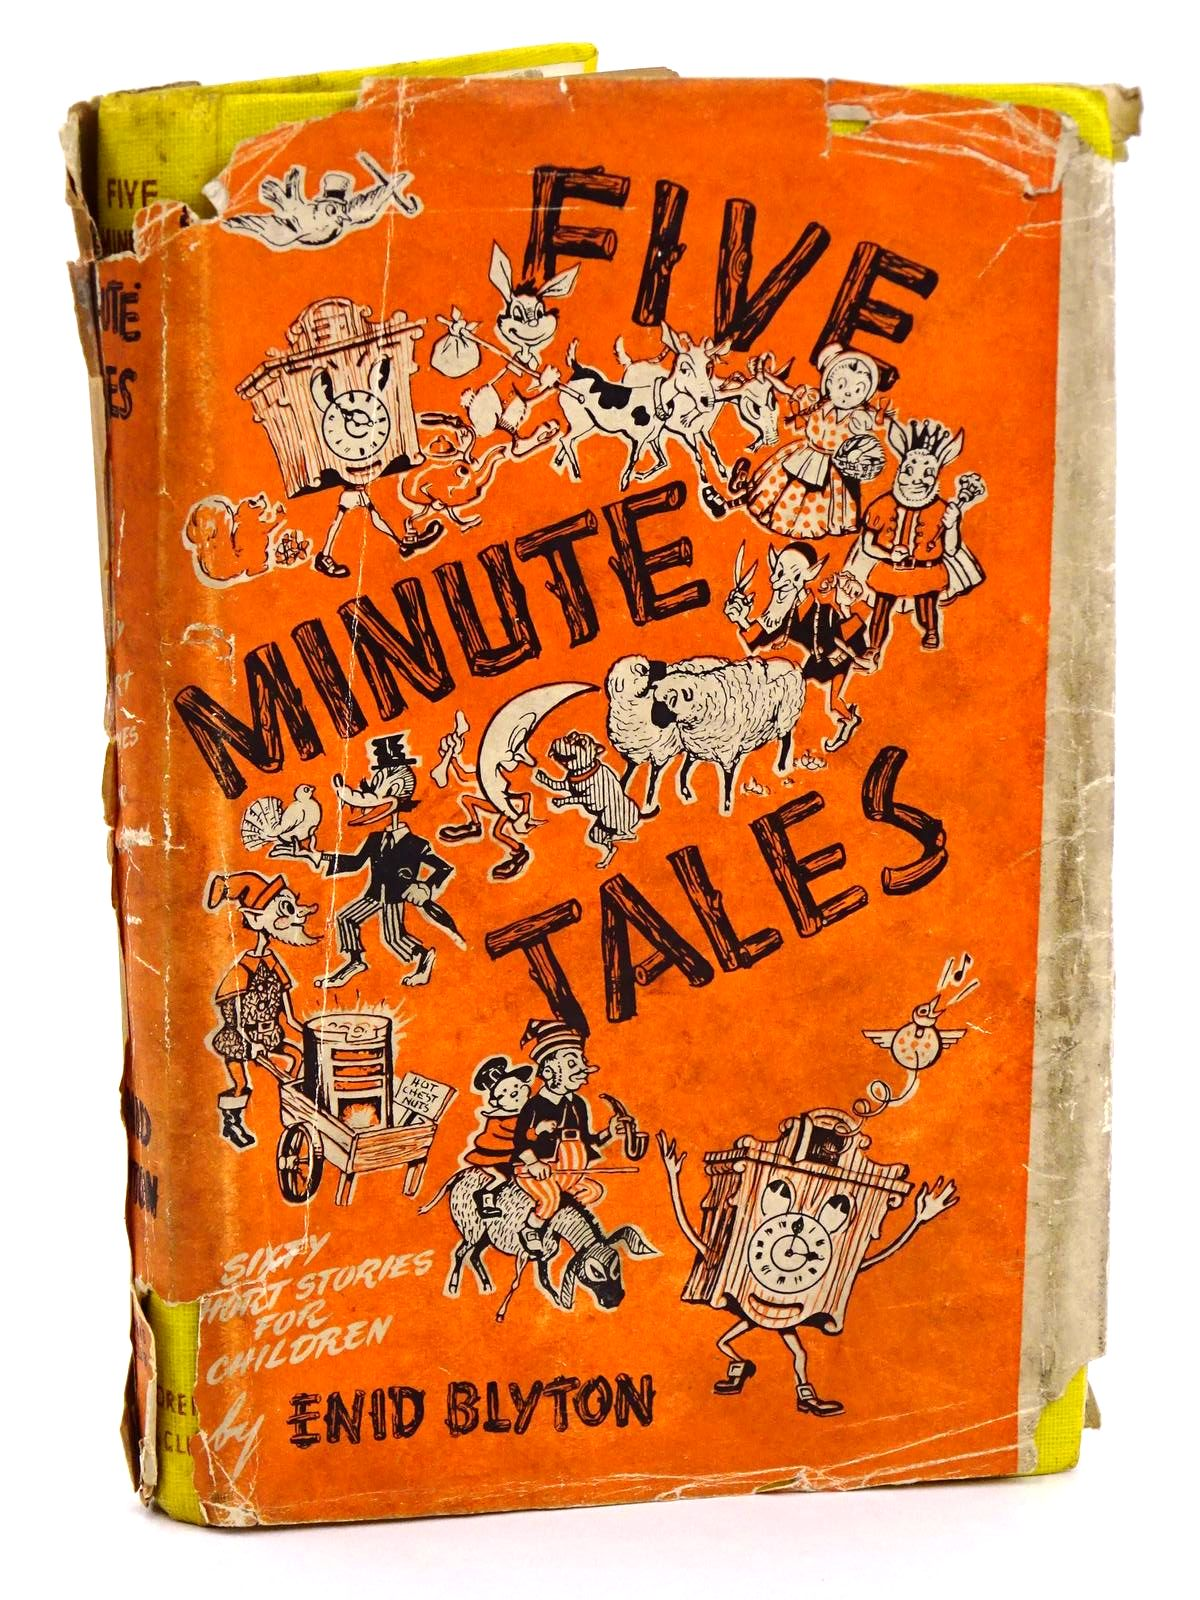 Photo of FIVE-MINUTE TALES written by Blyton, Enid published by The Children's Book Club (STOCK CODE: 1318204)  for sale by Stella & Rose's Books